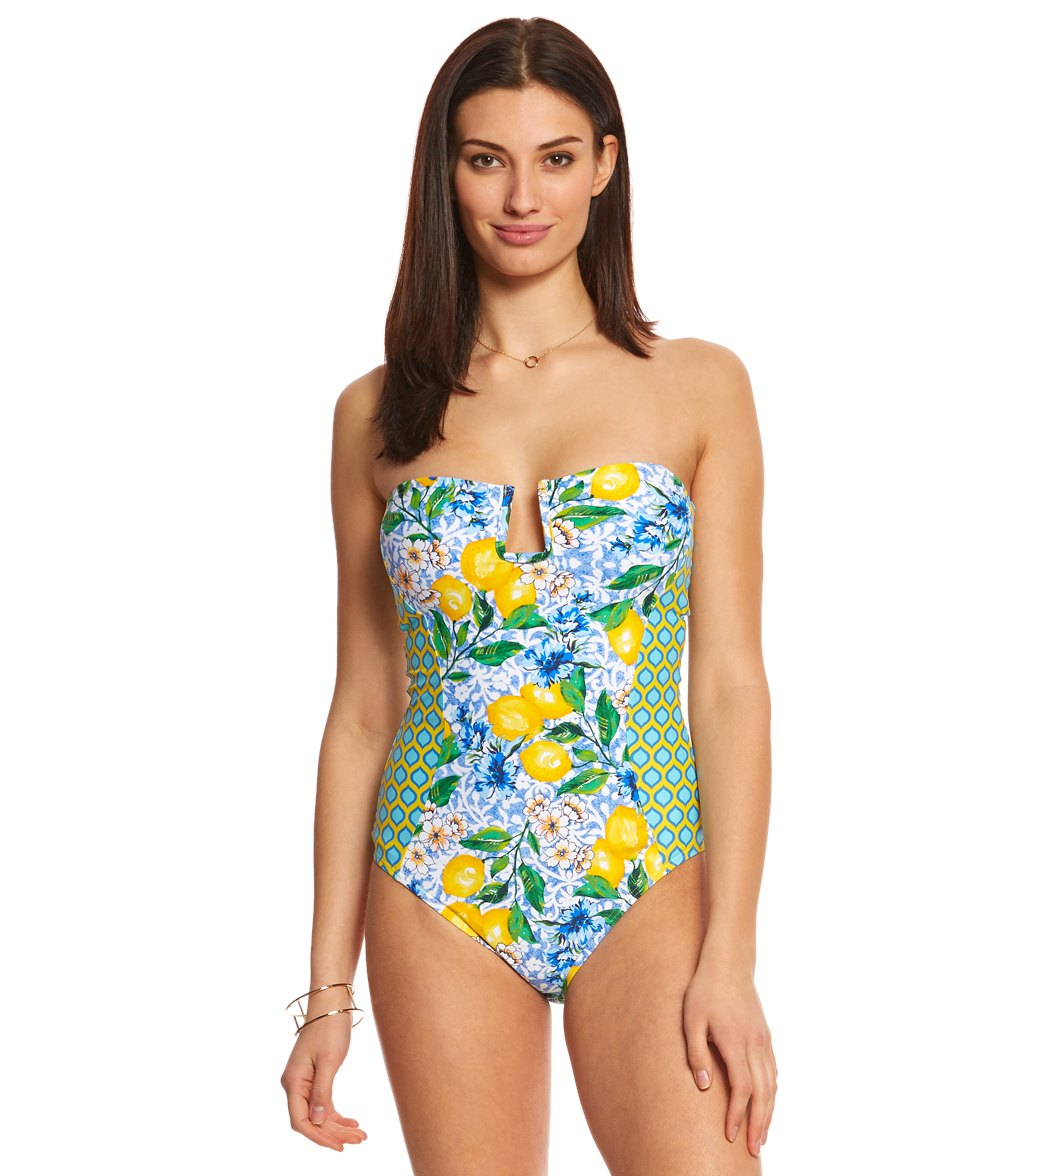 2153cb8e5015 ... La Blanca Limoncello Bandeau One Piece Swimsuit. Play Video. MODEL  MEASUREMENTS